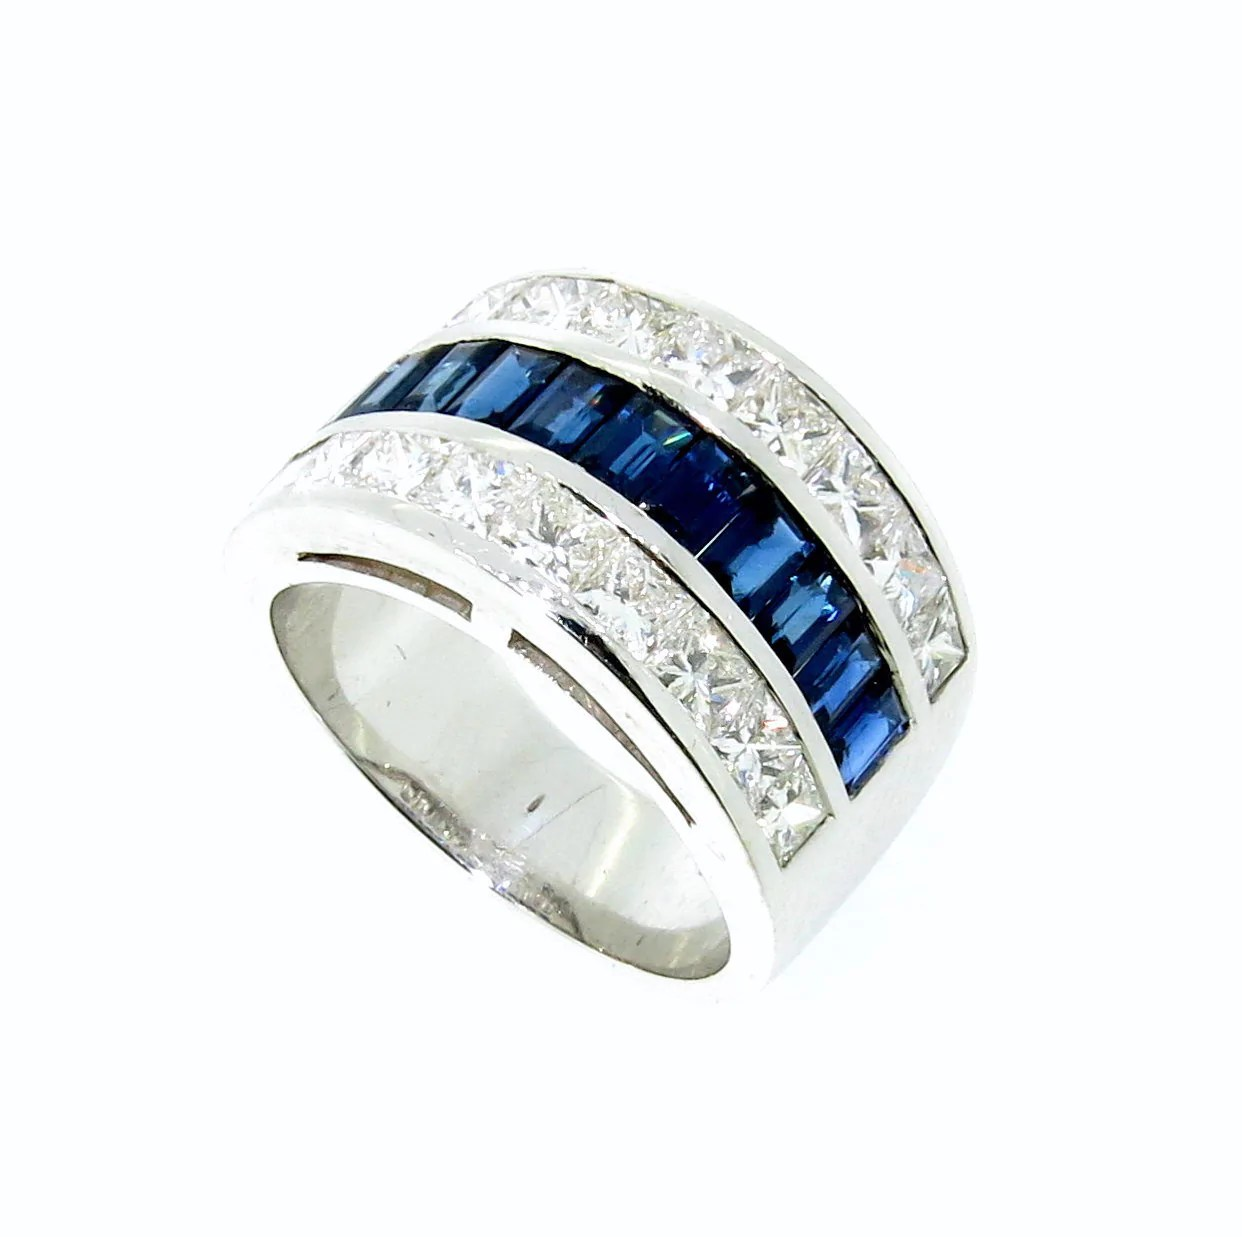 wide band blue sapphire gemstone diamond wedding engagement ring anniversary ring cocktail ring wide wedding bands Wide Band Blue Sapphire Gemstone Diamond Engagement Wedding Band Anniversary Ring Cocktail